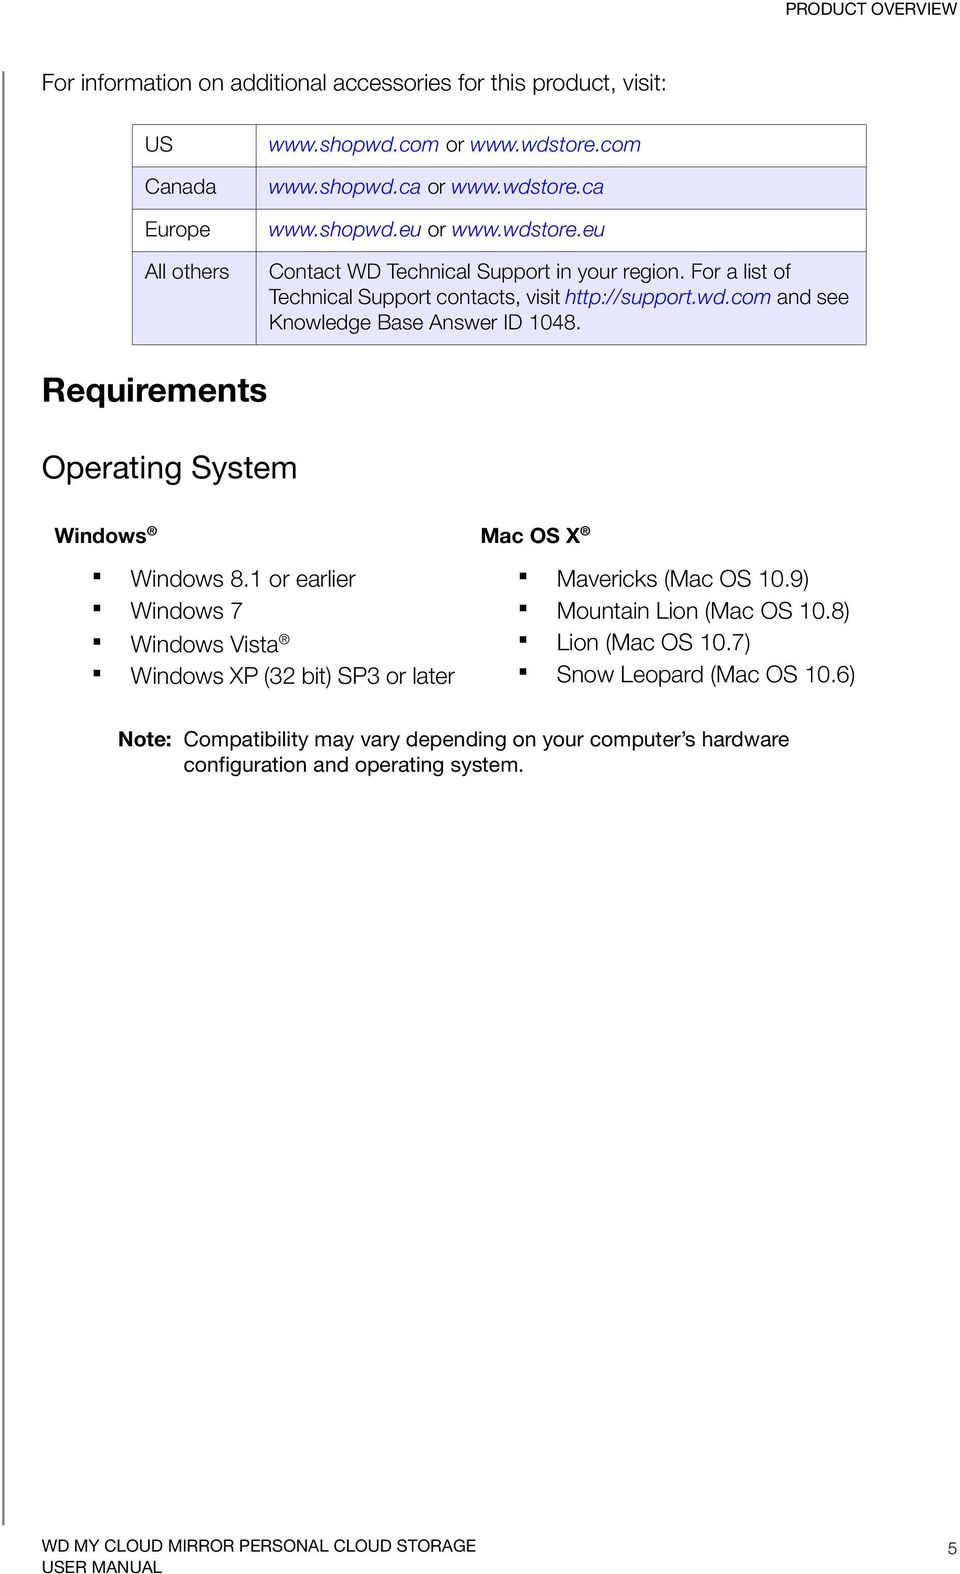 Requirements Operating System Windows Mac OS X Windows 8.1 or earlier Windows 7 Windows Vista Windows XP (32 bit) SP3 or later Mavericks (Mac OS 10.